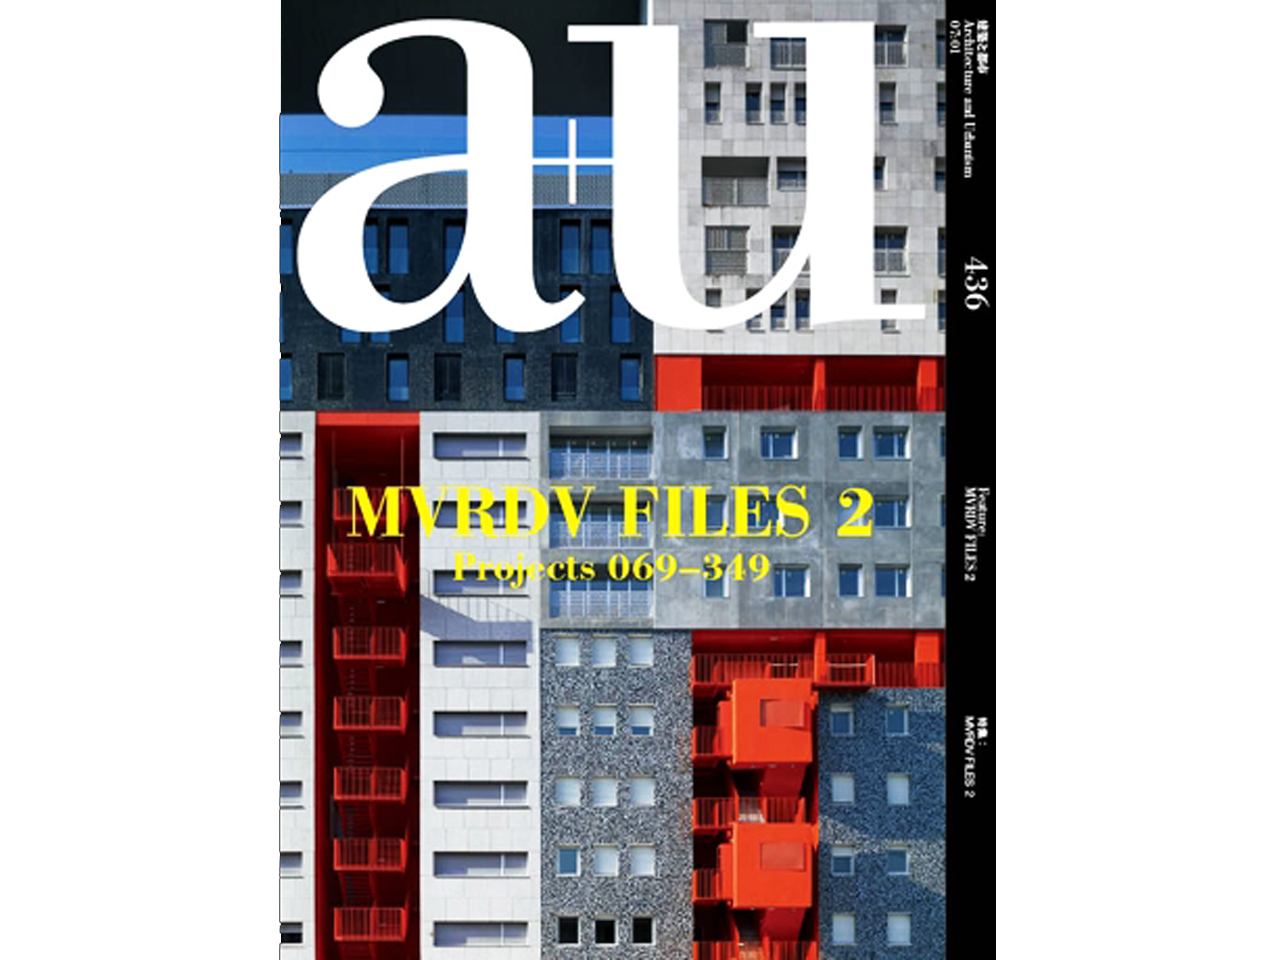 A+U: MVRDV Files 2 - Projects 069-349